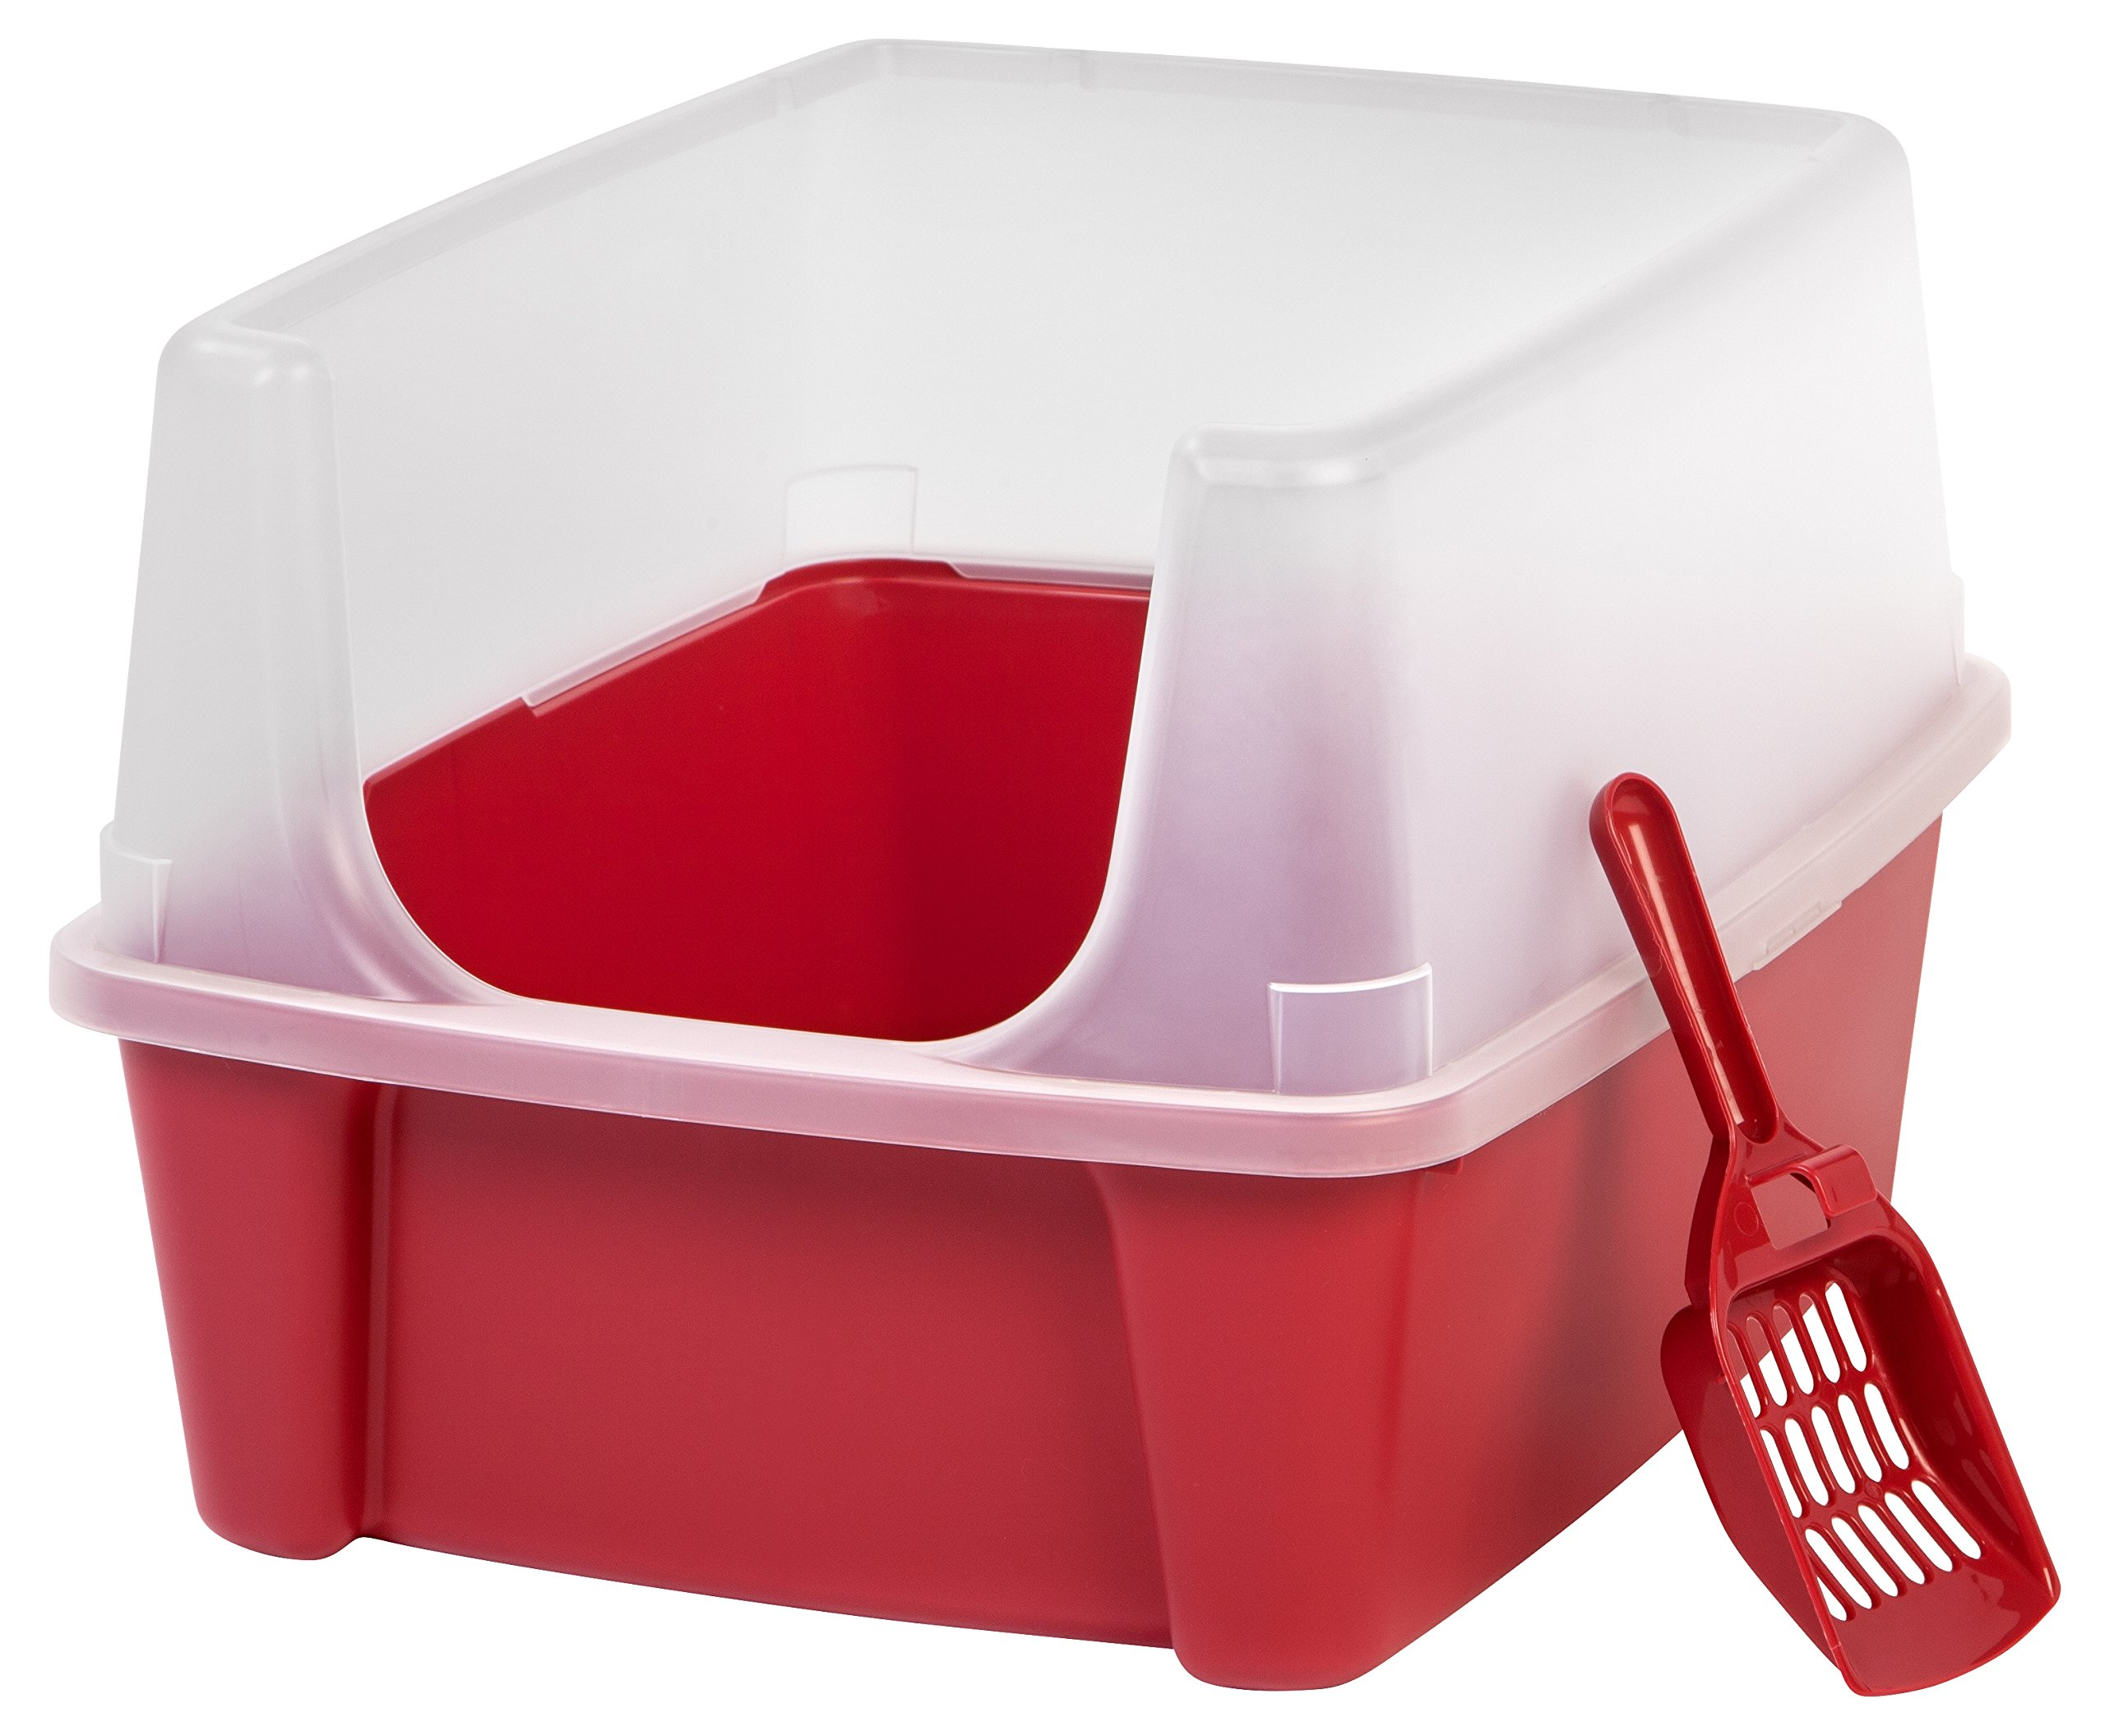 IRIS Open Top Cat Litter Box Kit with Shield and Scoop, Red